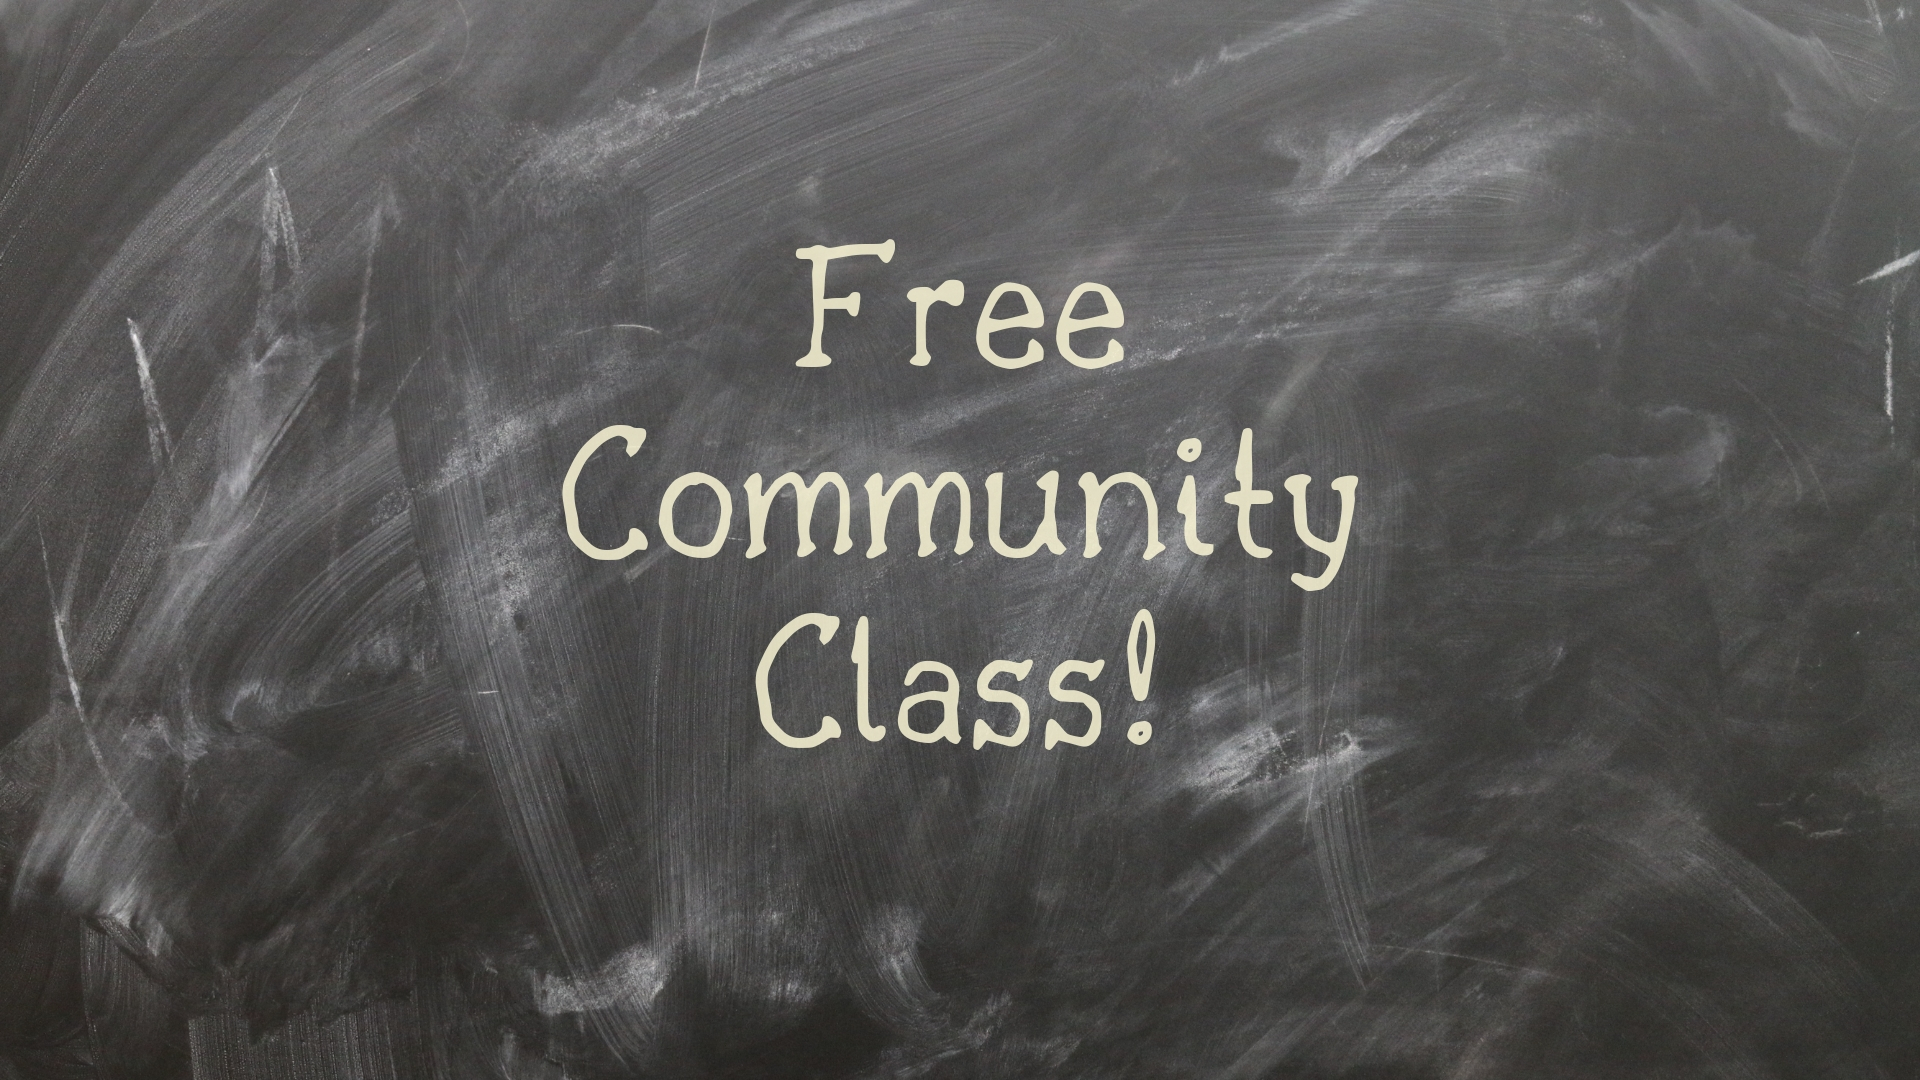 Howard College Offering a Free Community Class